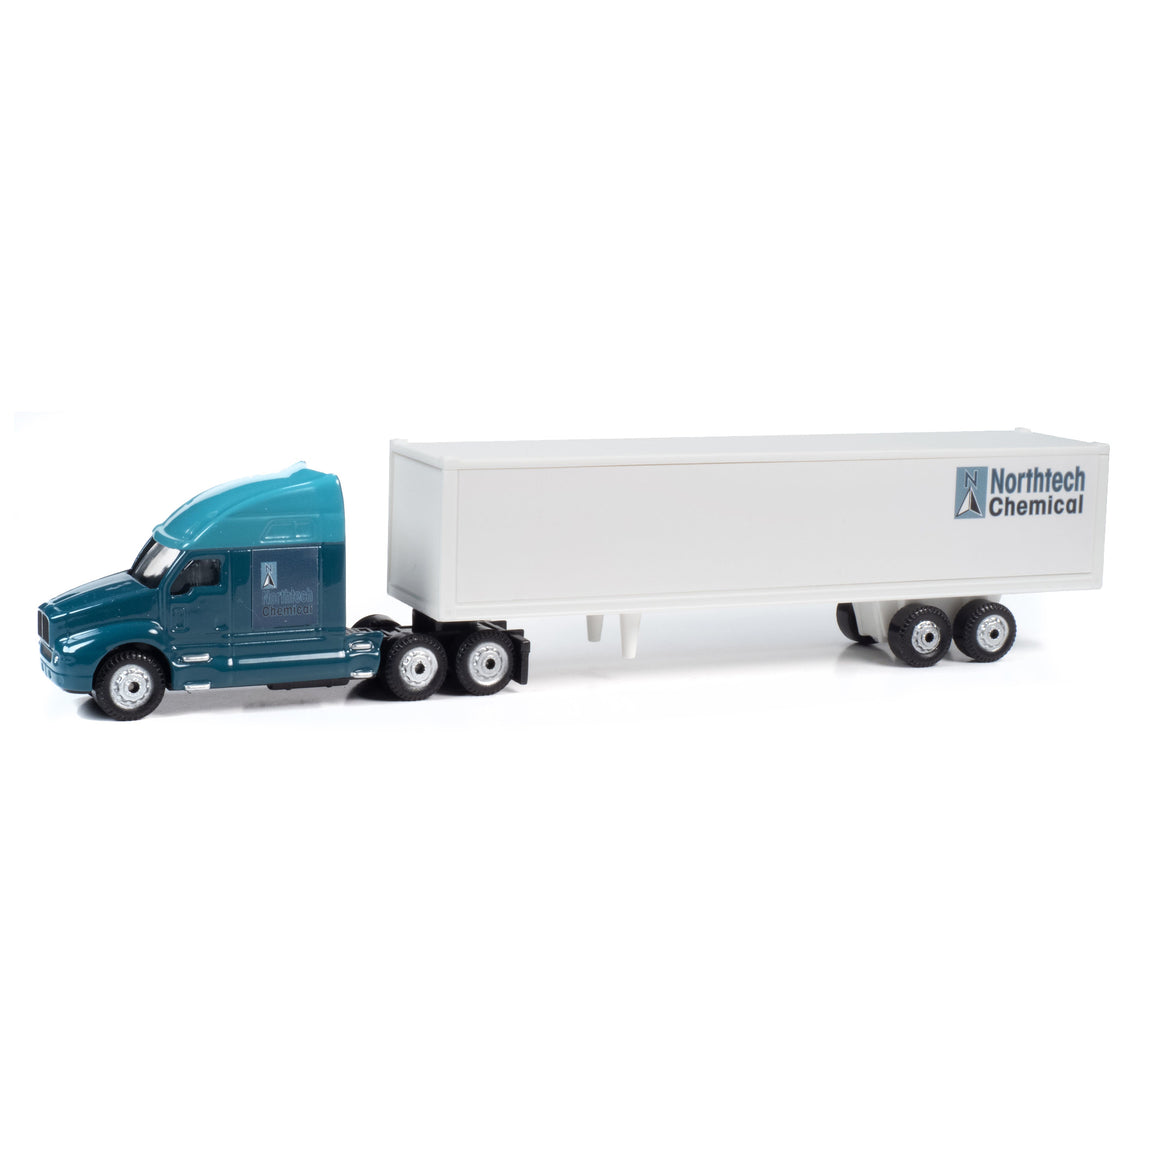 HO Scale: 2000's Semi Tractor & Trailer - Northtech Chemical